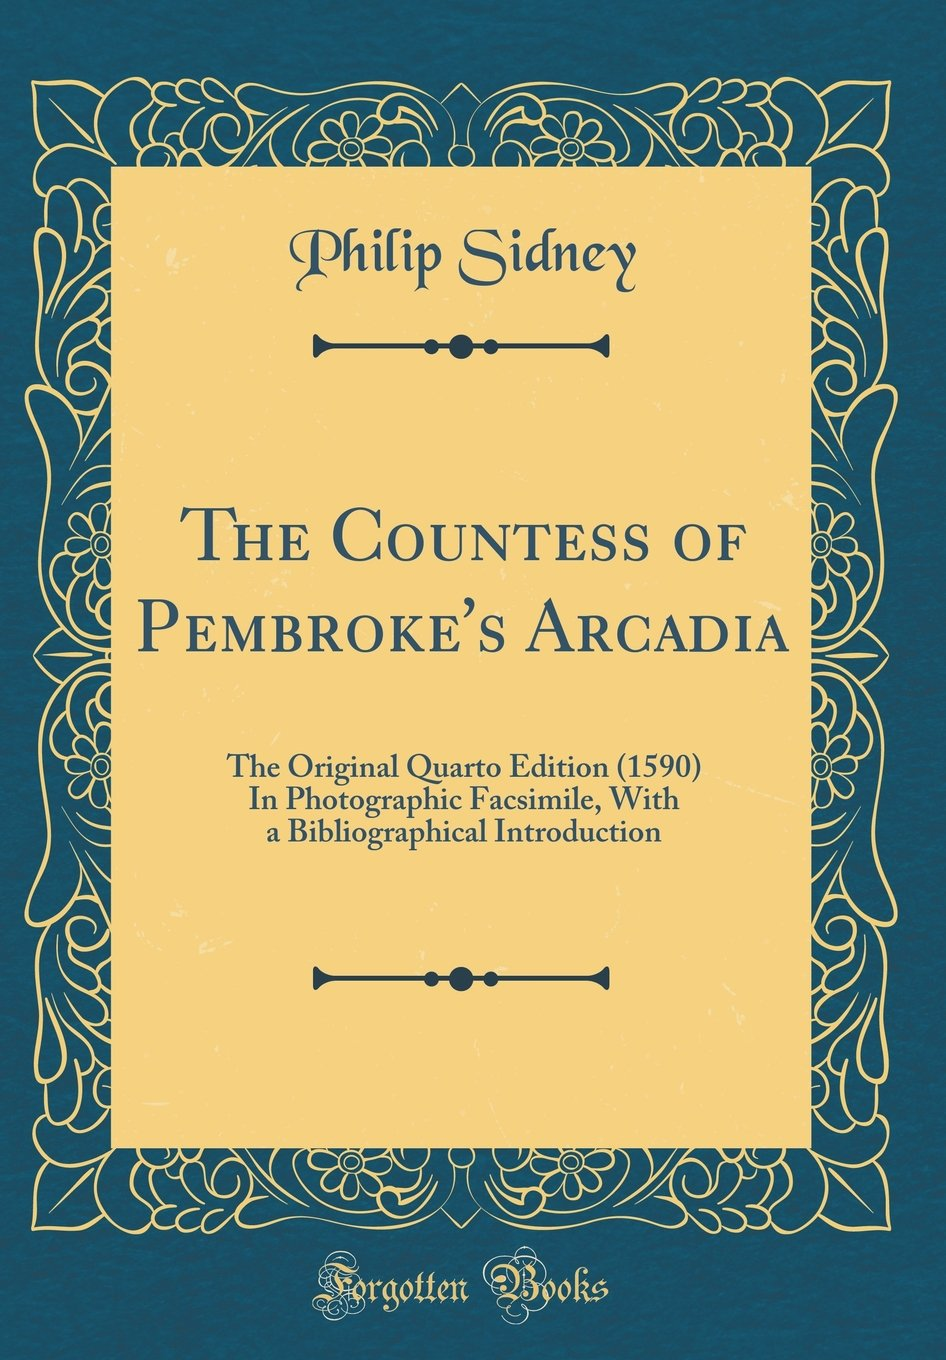 Download The Countess of Pembroke's Arcadia: The Original Quarto Edition (1590) In Photographic Facsimile, With a Bibliographical Introduction (Classic Reprint) pdf epub